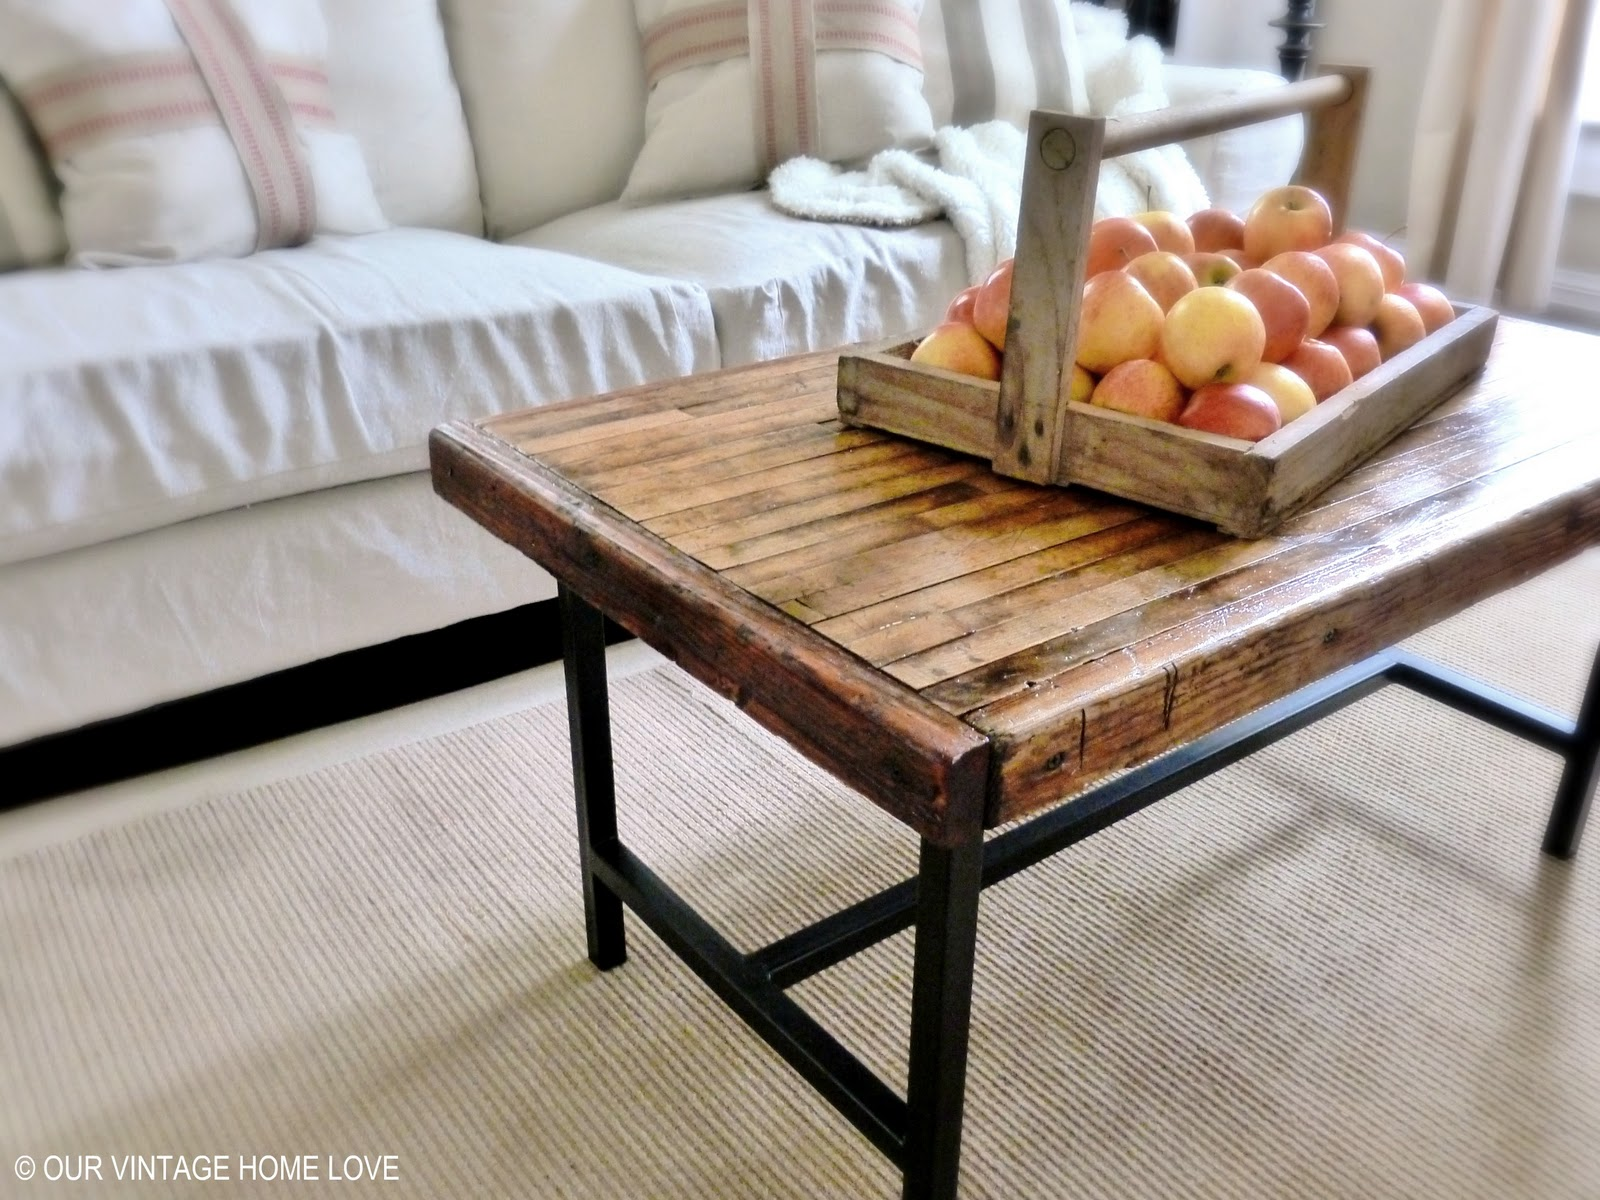 our vintage home love Salvaged Bowling Alley Floor Table